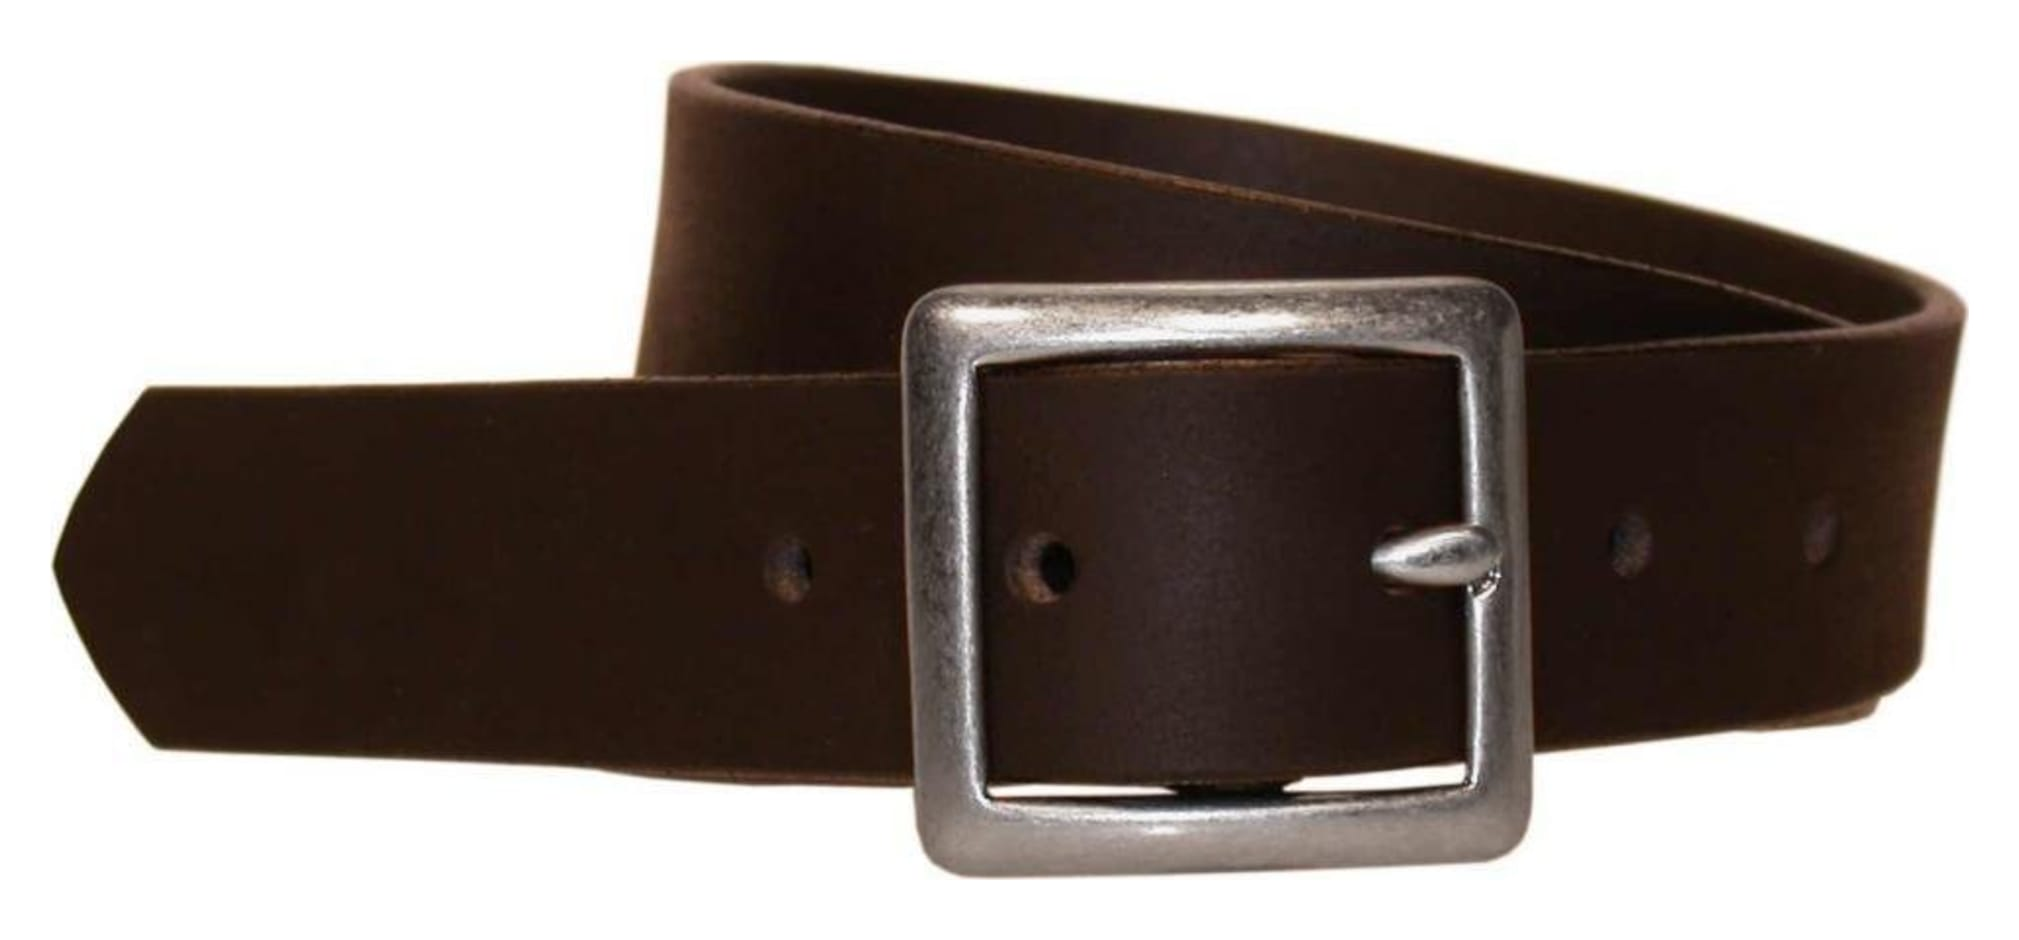 Bison 30mm Standard Leather Silver Buckle Belt Brown 34